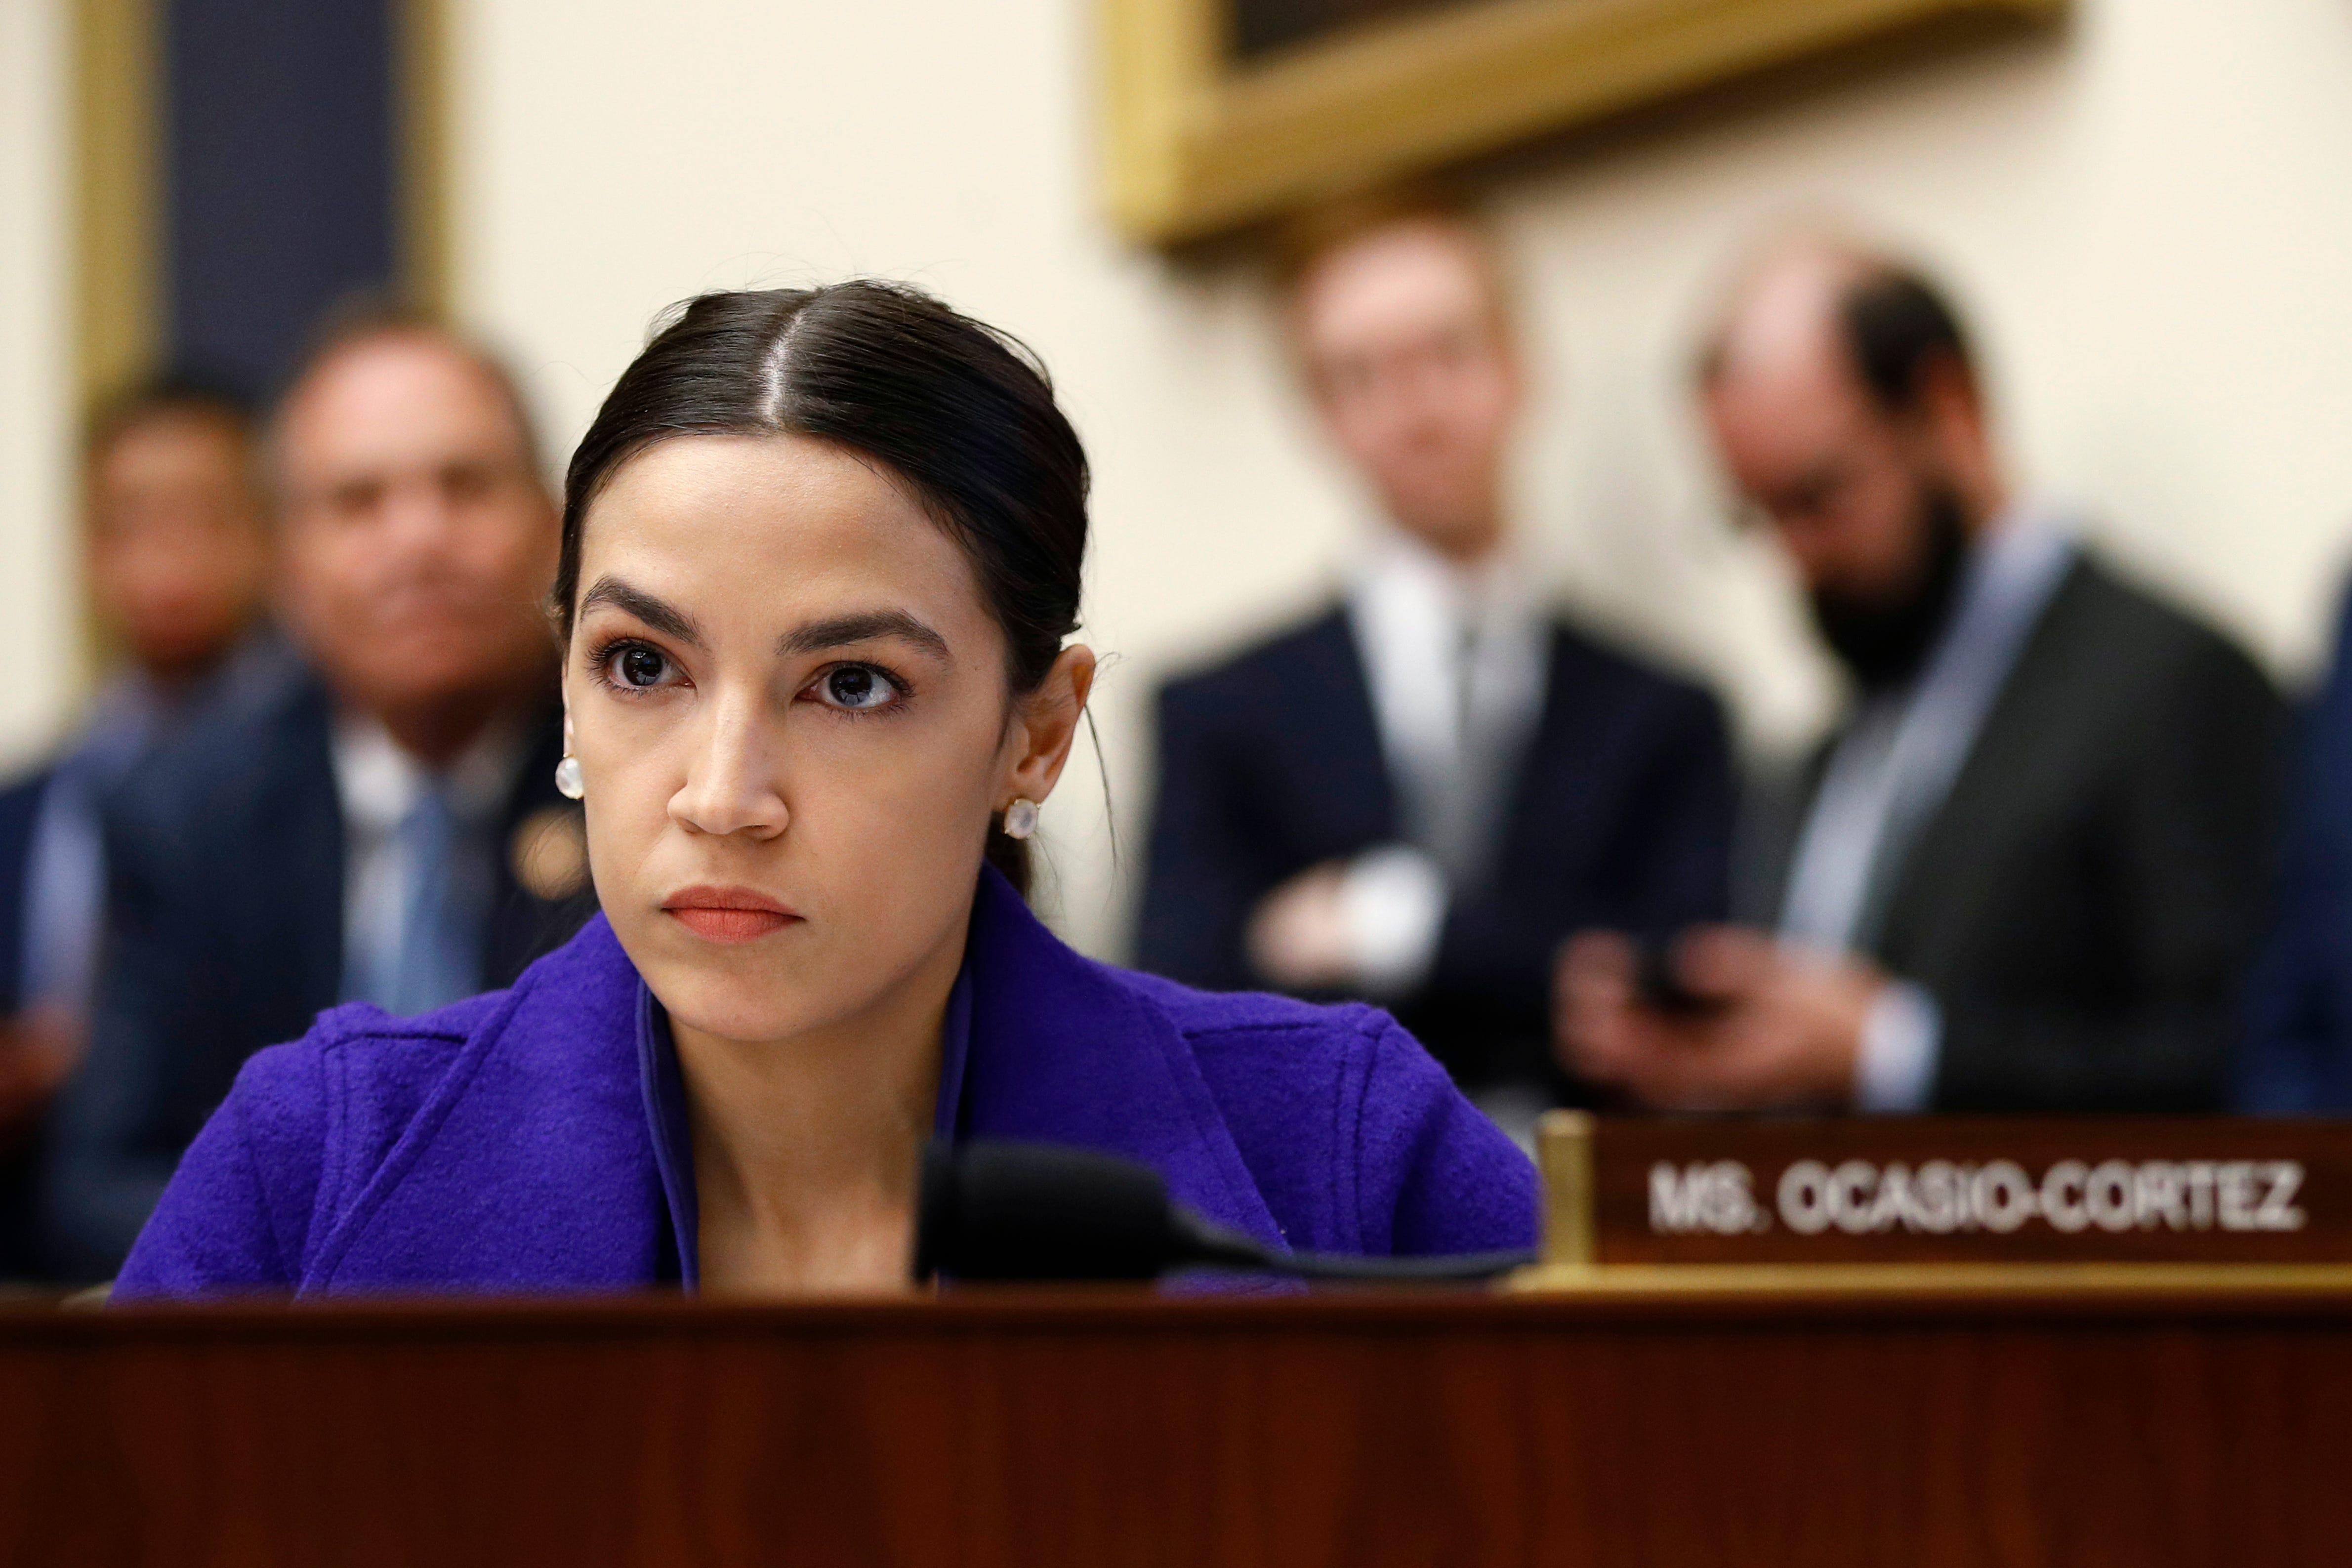 Fresno Grizzlies losing sponsors after fallout from video featuring Alexandria Ocasio-Cortez